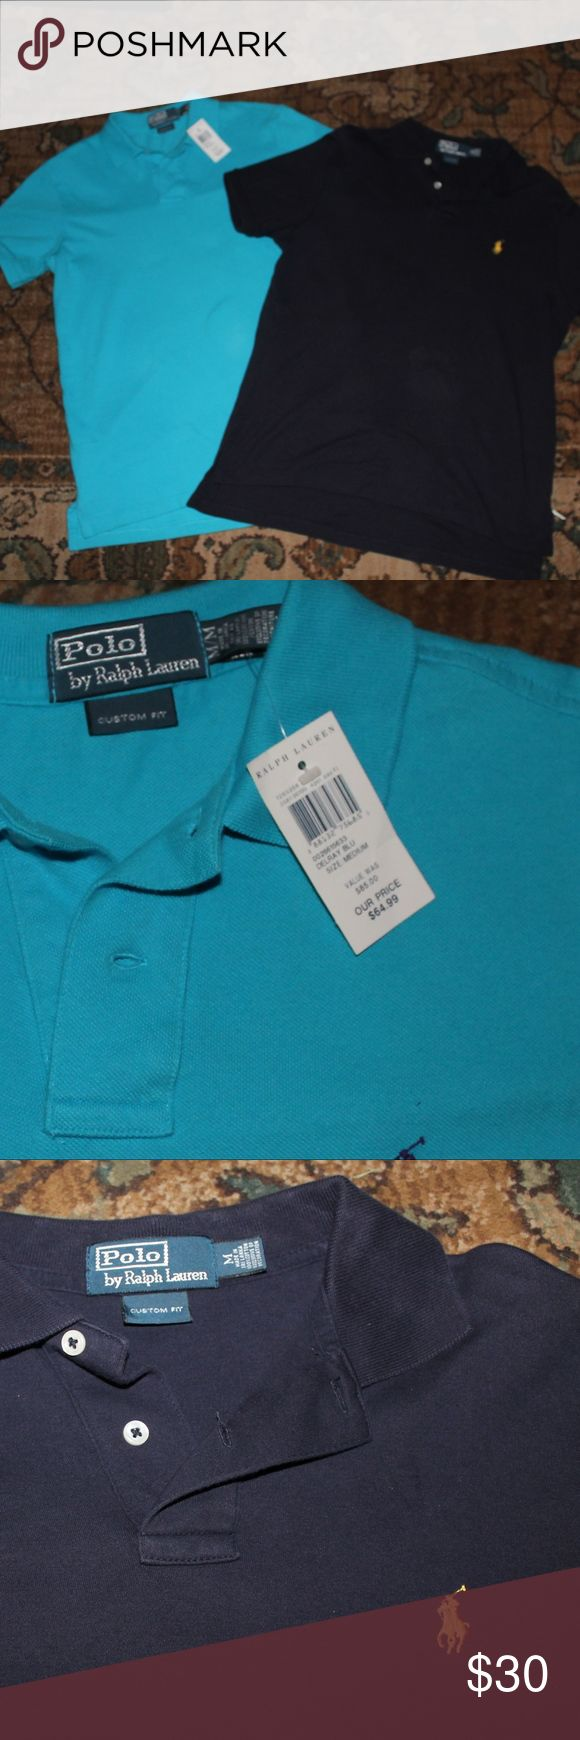 2 Custom Fit Medium Polo Shirts One is new with tags. Sky blue and navy blue polo shirts. Both custom fit and both size medium. Polo by Ralph Lauren Shirts Polos